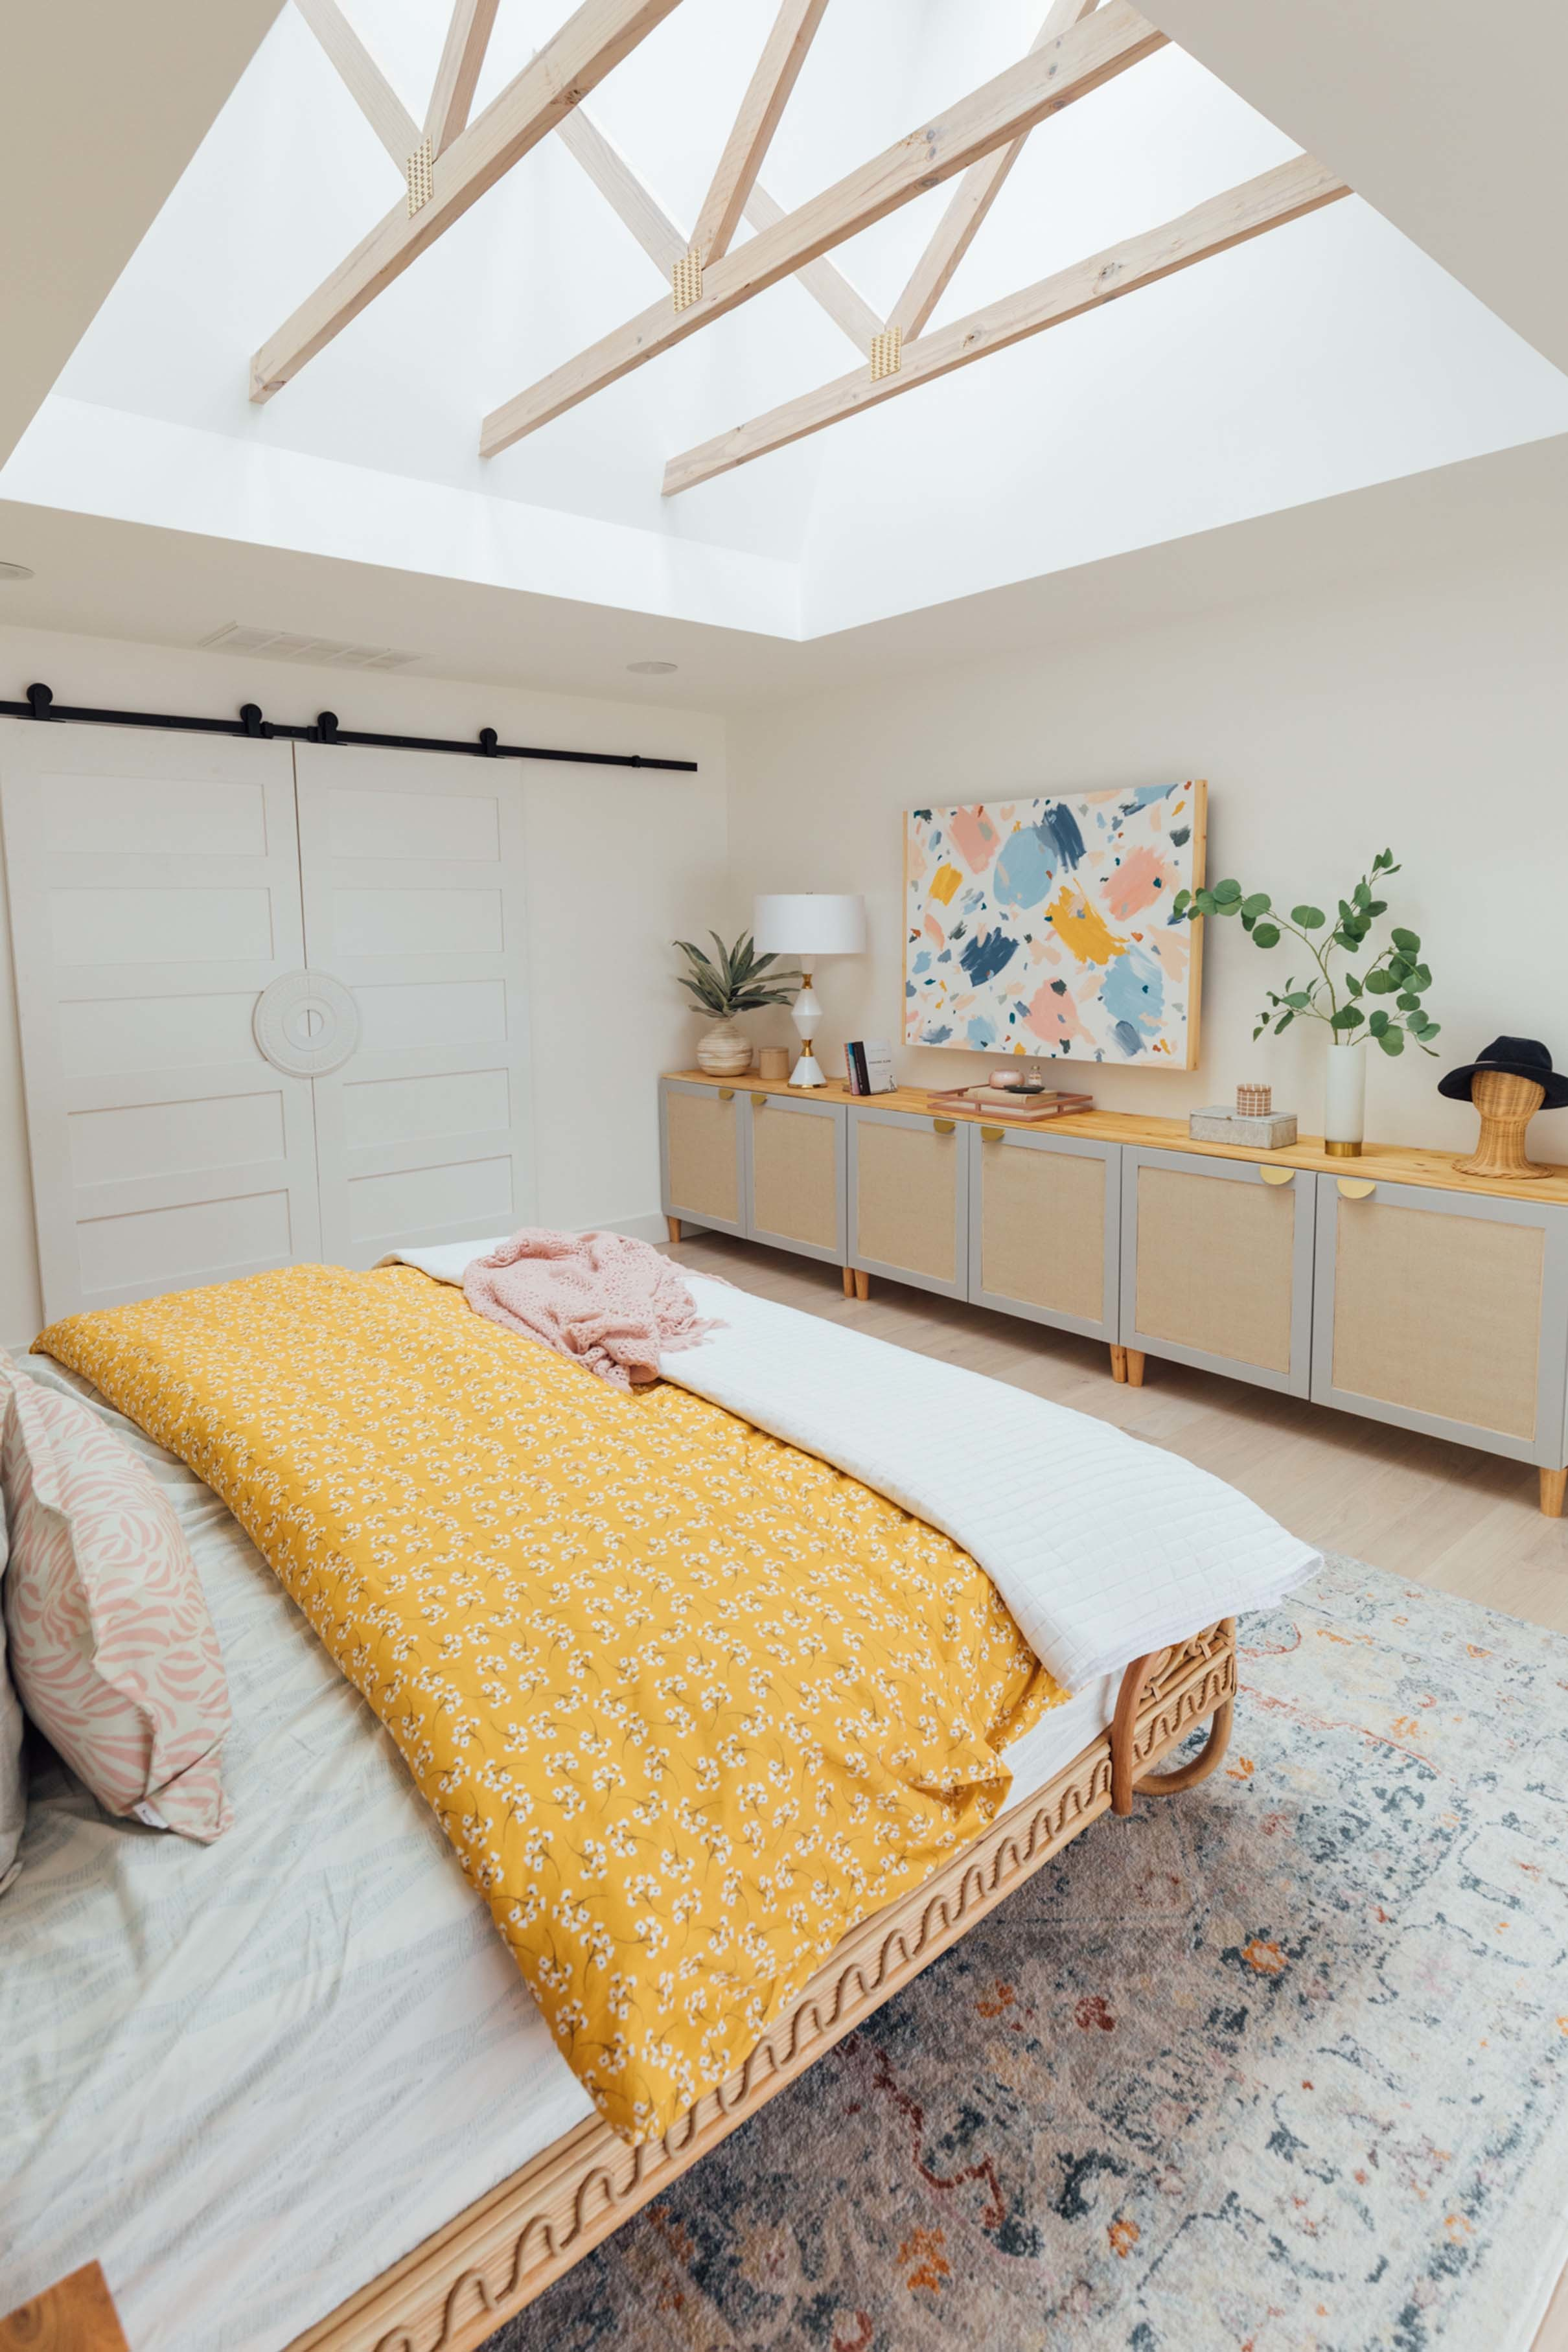 Bedroom skylights exposed trusses yellow